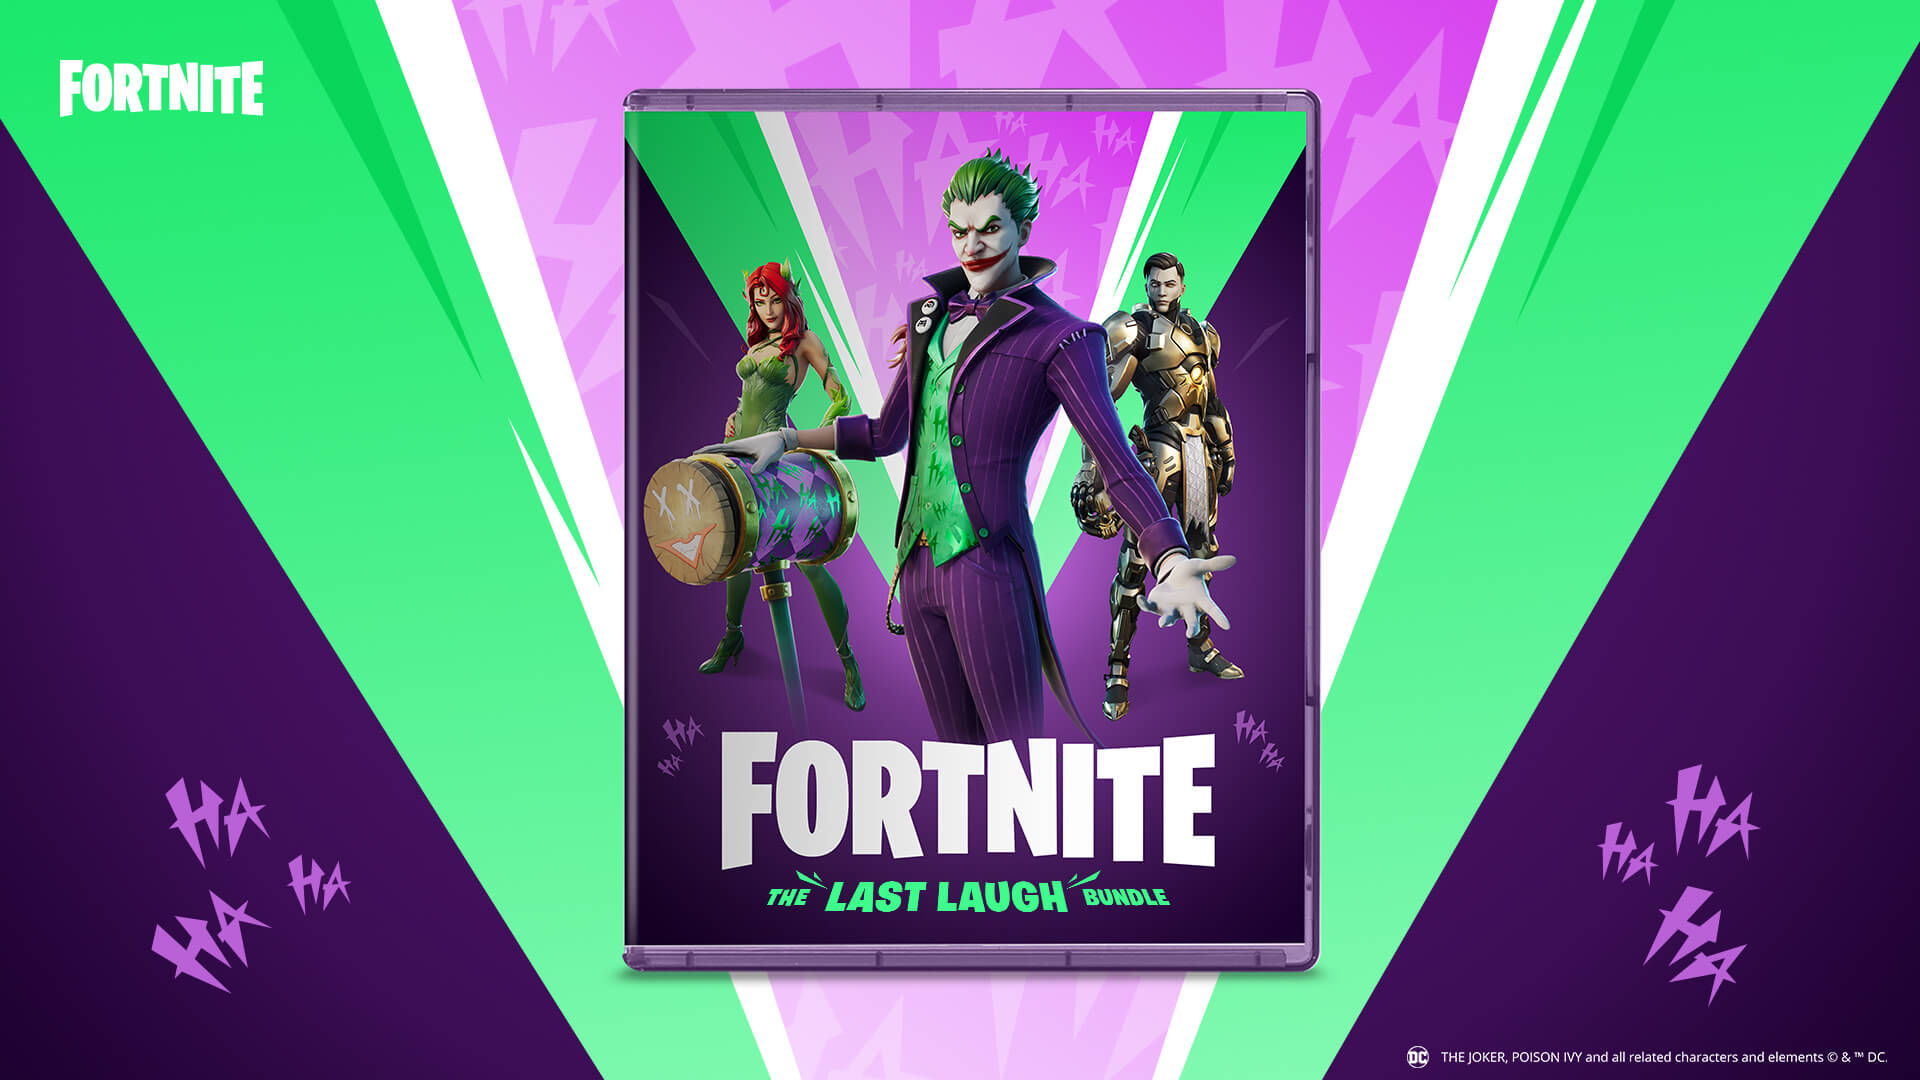 Warner Bros, Epic Games & DC Announce All-New Fortnite Bundle Coming This Spring